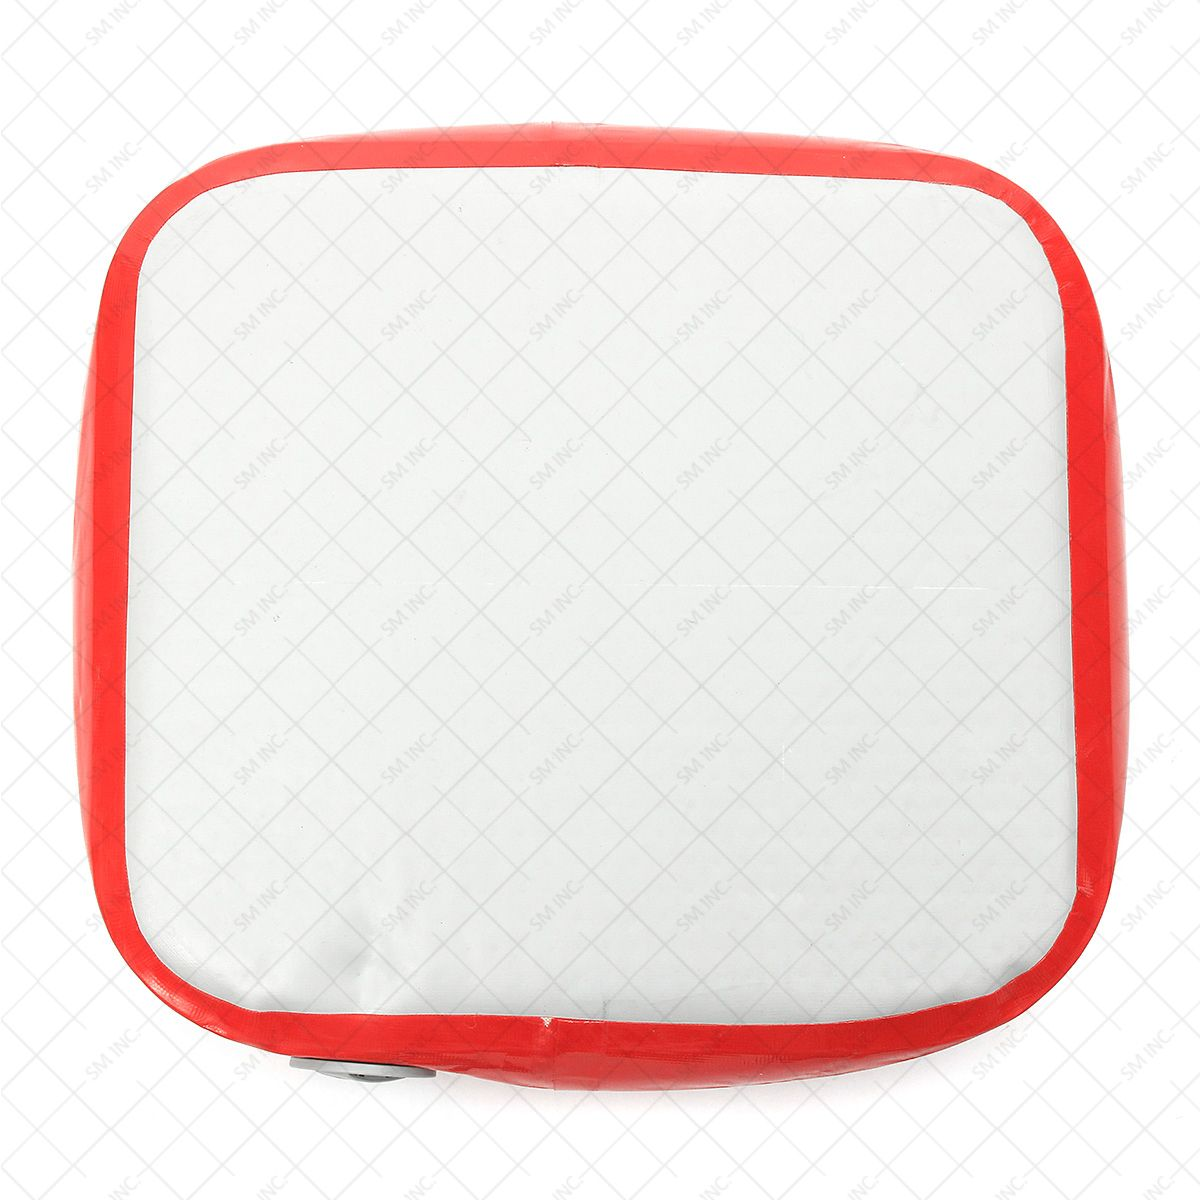 1Pcs 45x40x10cm Inflatable Gymnastics Mat Air Floor